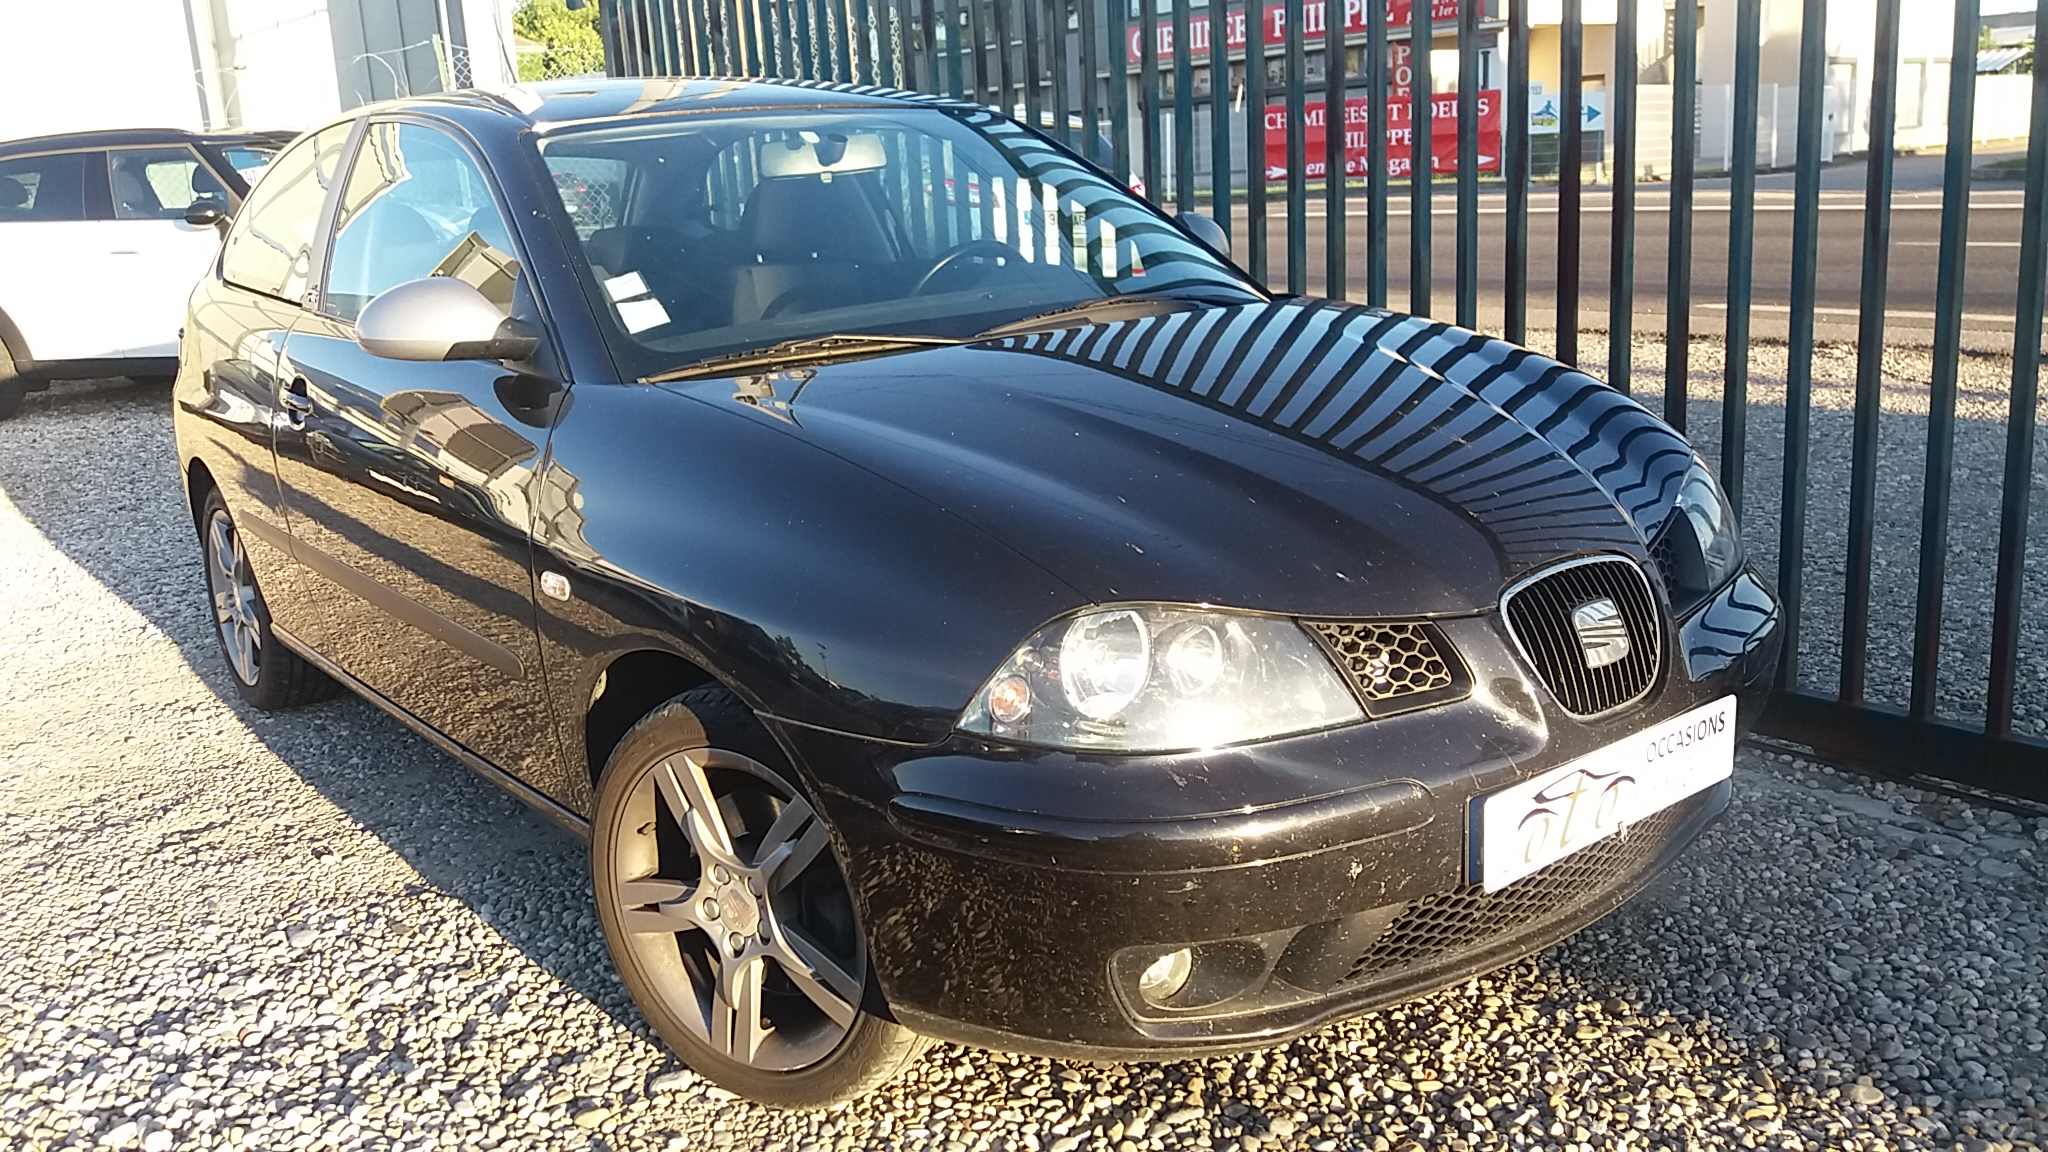 voiture seat ibiza 1 9 tdi 130 fr occasion diesel 2005 167826 km 5290 saint priest. Black Bedroom Furniture Sets. Home Design Ideas